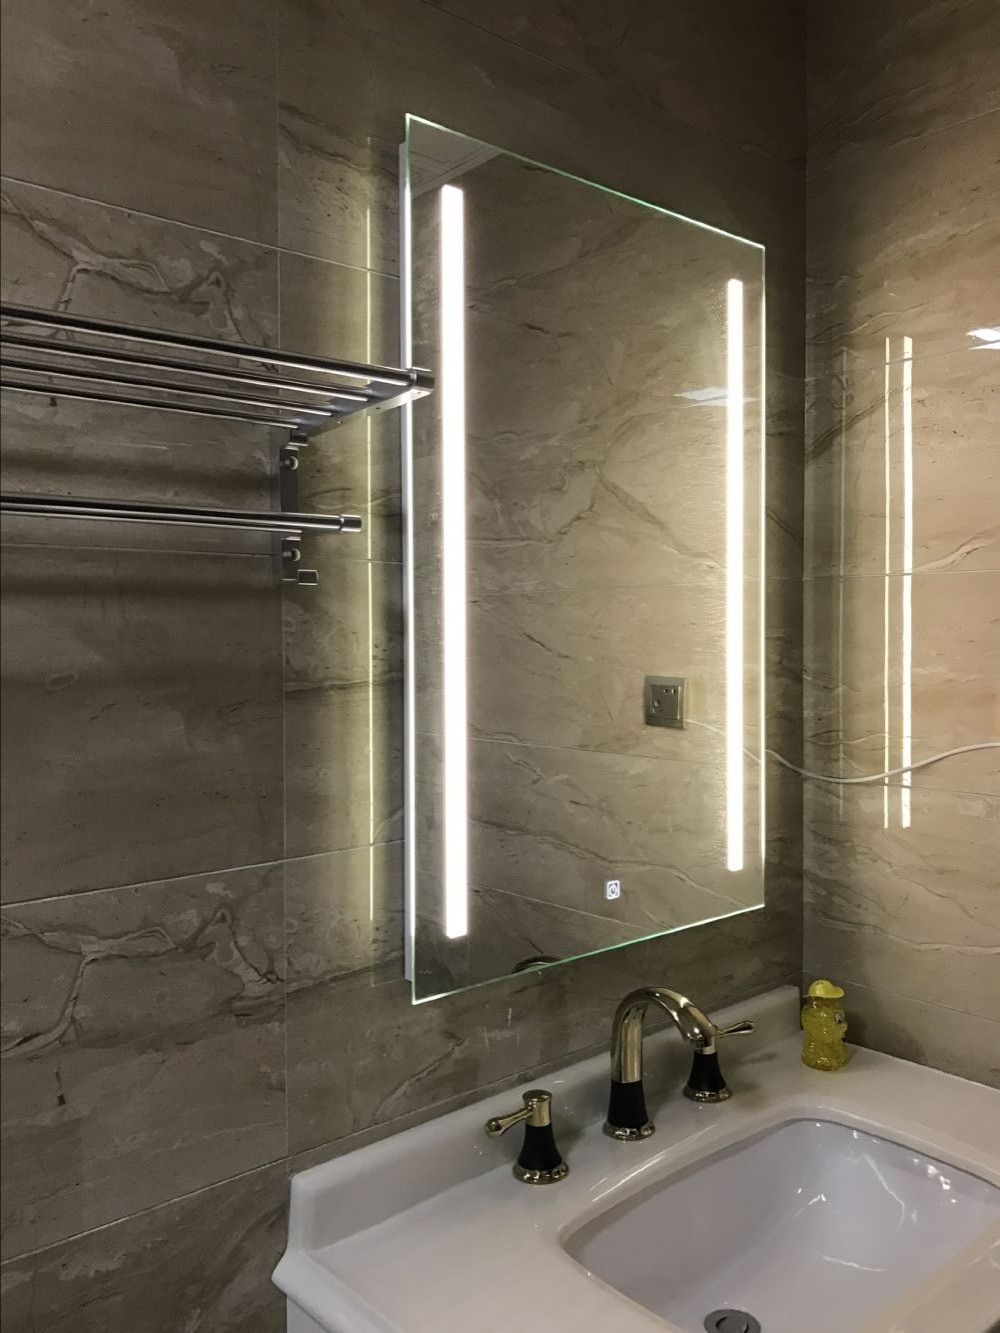 [%us $180.0 10% Off|waterproof Wall Mount Led Lighted Bathroom Mirror Vanity Defogger 2 Vertical Lights Rectangular Touch Light Mirror Bath Mirrors In Throughout Well Liked Lighted Wall Mirrors For Bathrooms|lighted Wall Mirrors For Bathrooms Intended For Most Recently Released Us $180.0 10% Off|waterproof Wall Mount Led Lighted Bathroom Mirror Vanity Defogger 2 Vertical Lights Rectangular Touch Light Mirror Bath Mirrors In|widely Used Lighted Wall Mirrors For Bathrooms Intended For Us $180.0 10% Off|waterproof Wall Mount Led Lighted Bathroom Mirror Vanity Defogger 2 Vertical Lights Rectangular Touch Light Mirror Bath Mirrors In|widely Used Us $ (View 10 of 20)